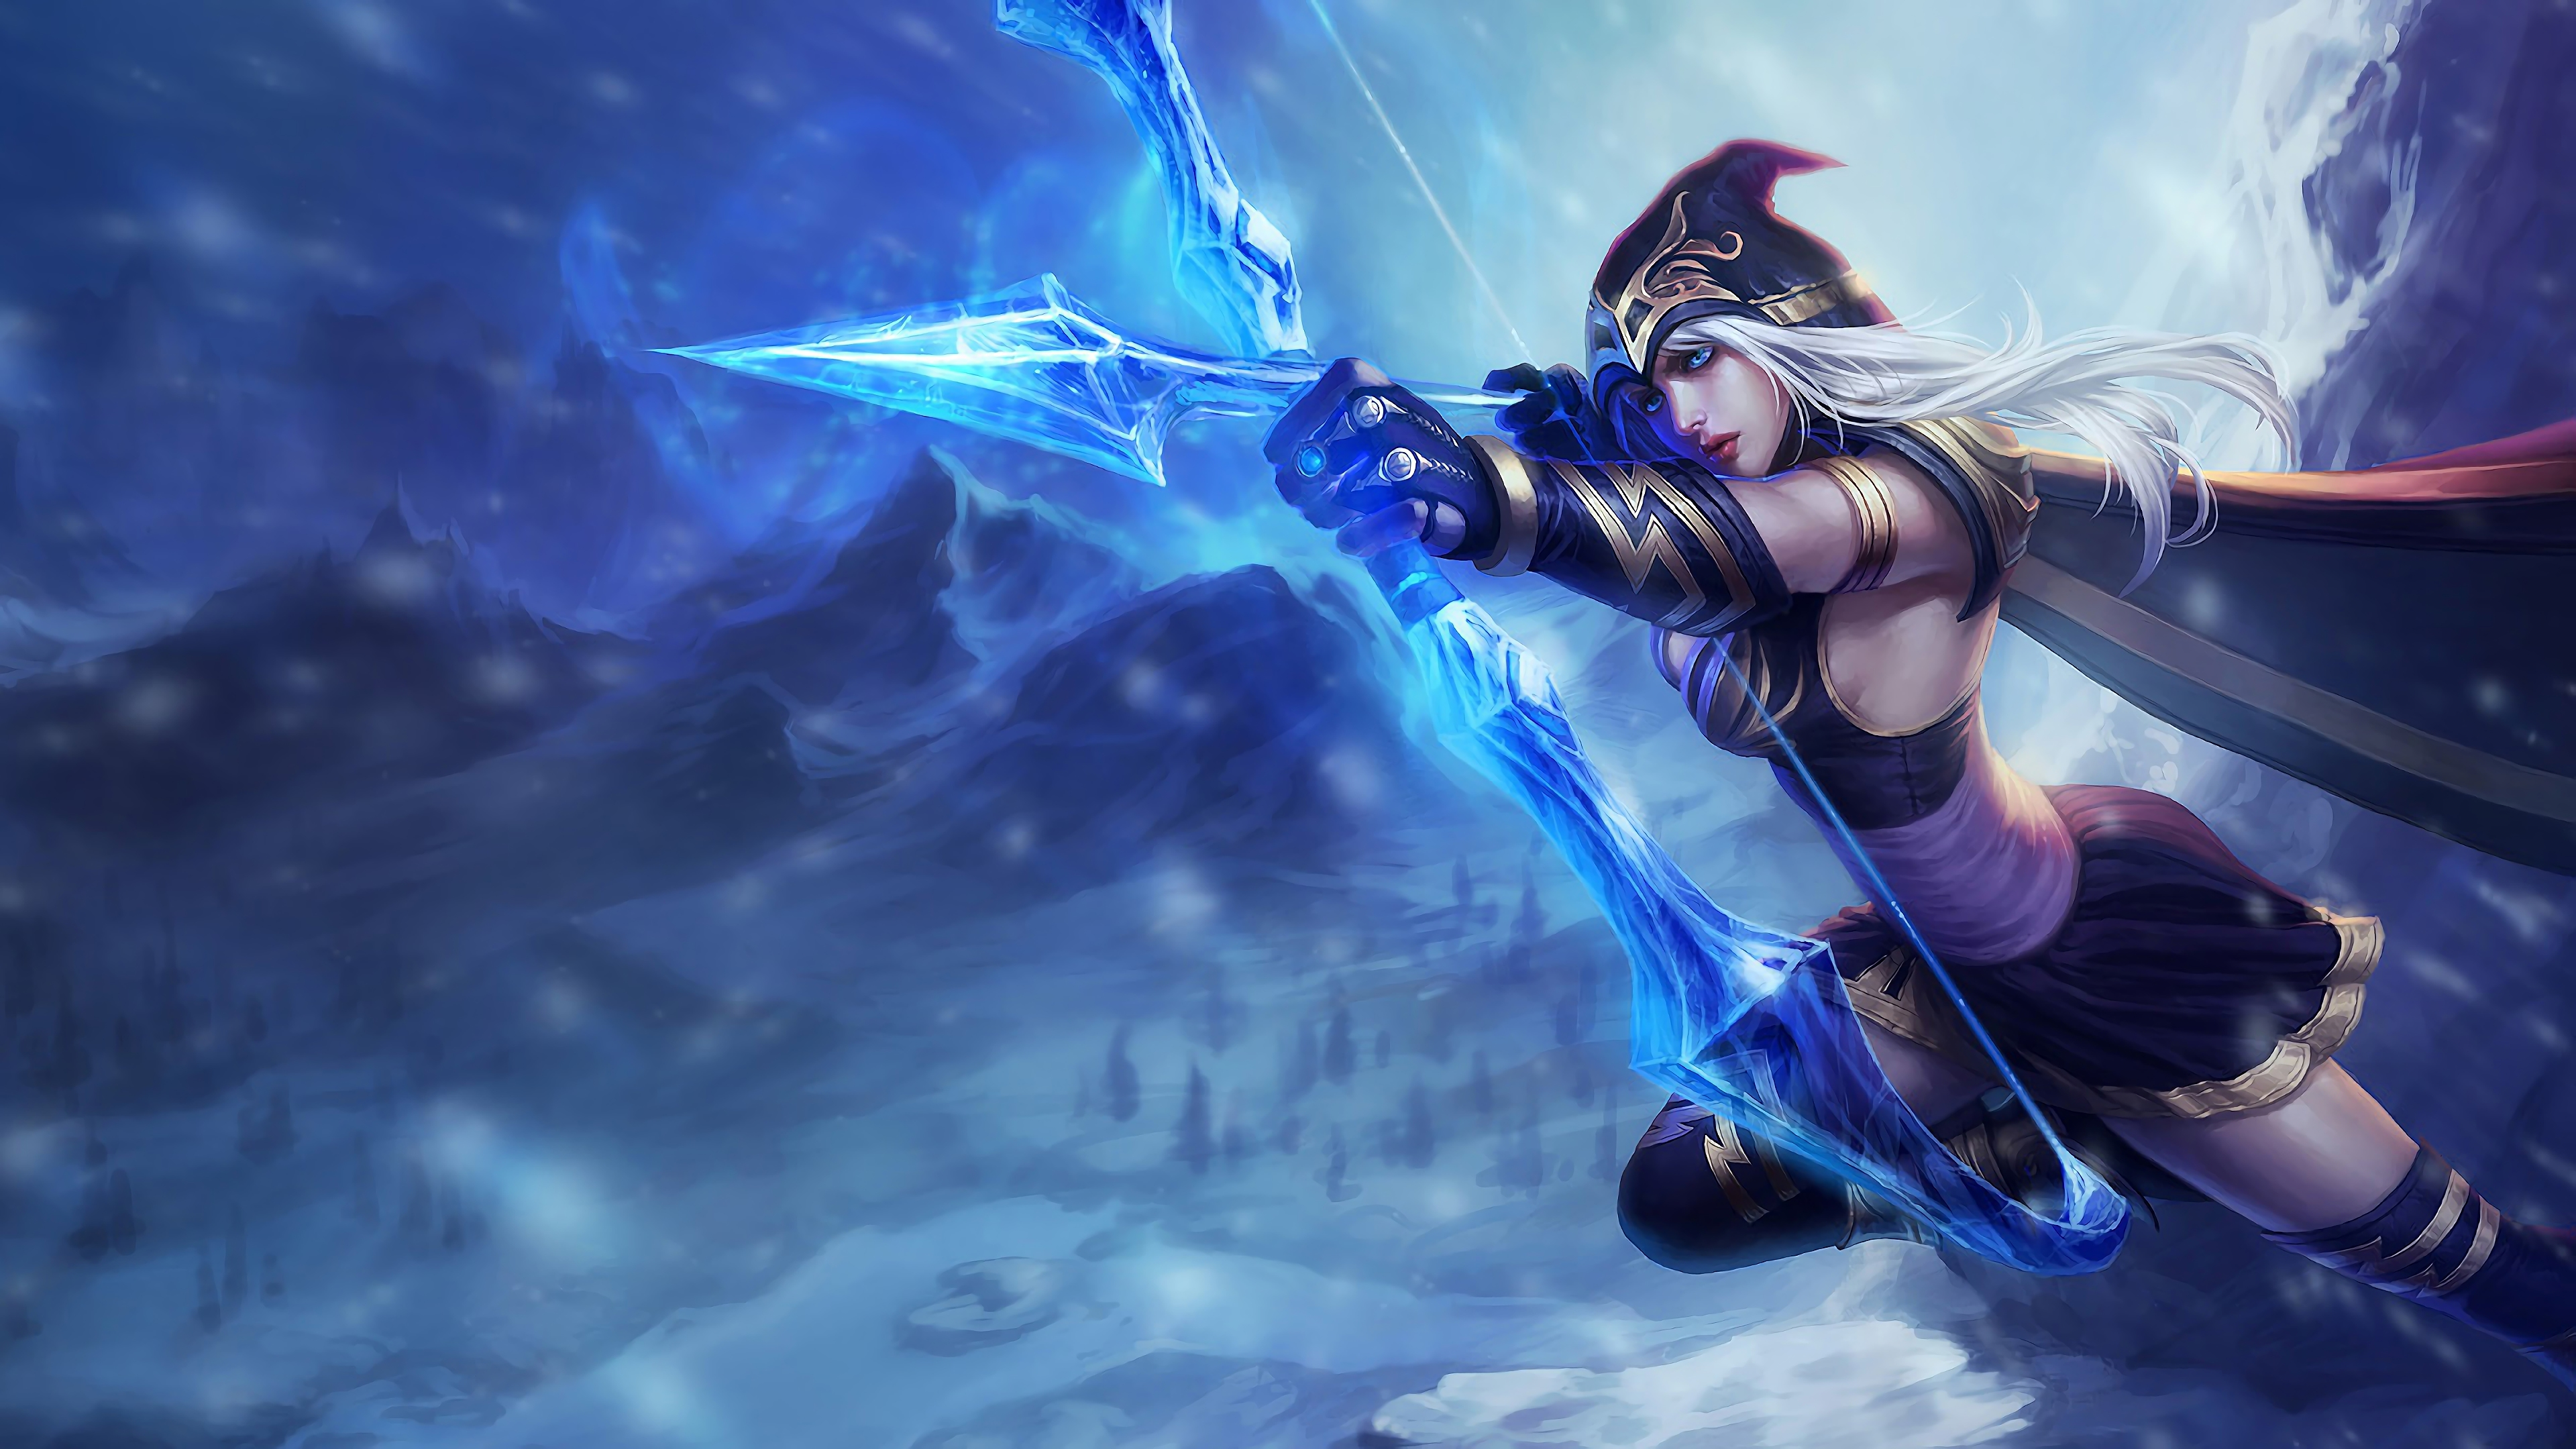 ashe lol splash art league of legends lol 1574102571 - Ashe LoL Splash Art League of Legends lol - league of legends, Ashe